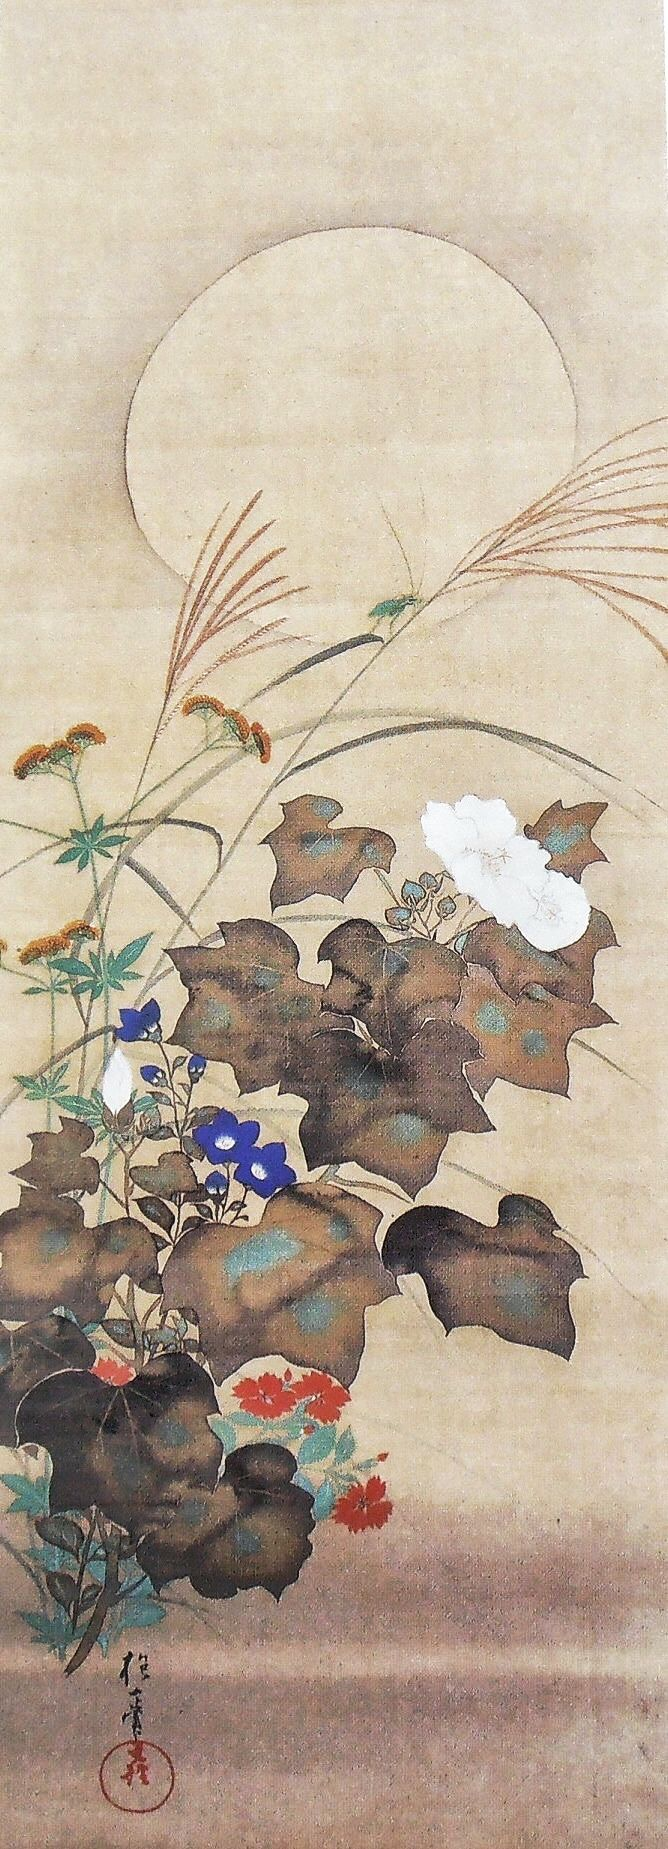 Sakai Hōitsu (酒井 抱一, 1761-1828). One of a set: Flowers and Birds of the Twelve Months (Jûnikagetsu Kachô zu, 十二か月花鳥図). Japanese hanging scroll. Early nineteenth century. Etsuko and Joe Price collection.